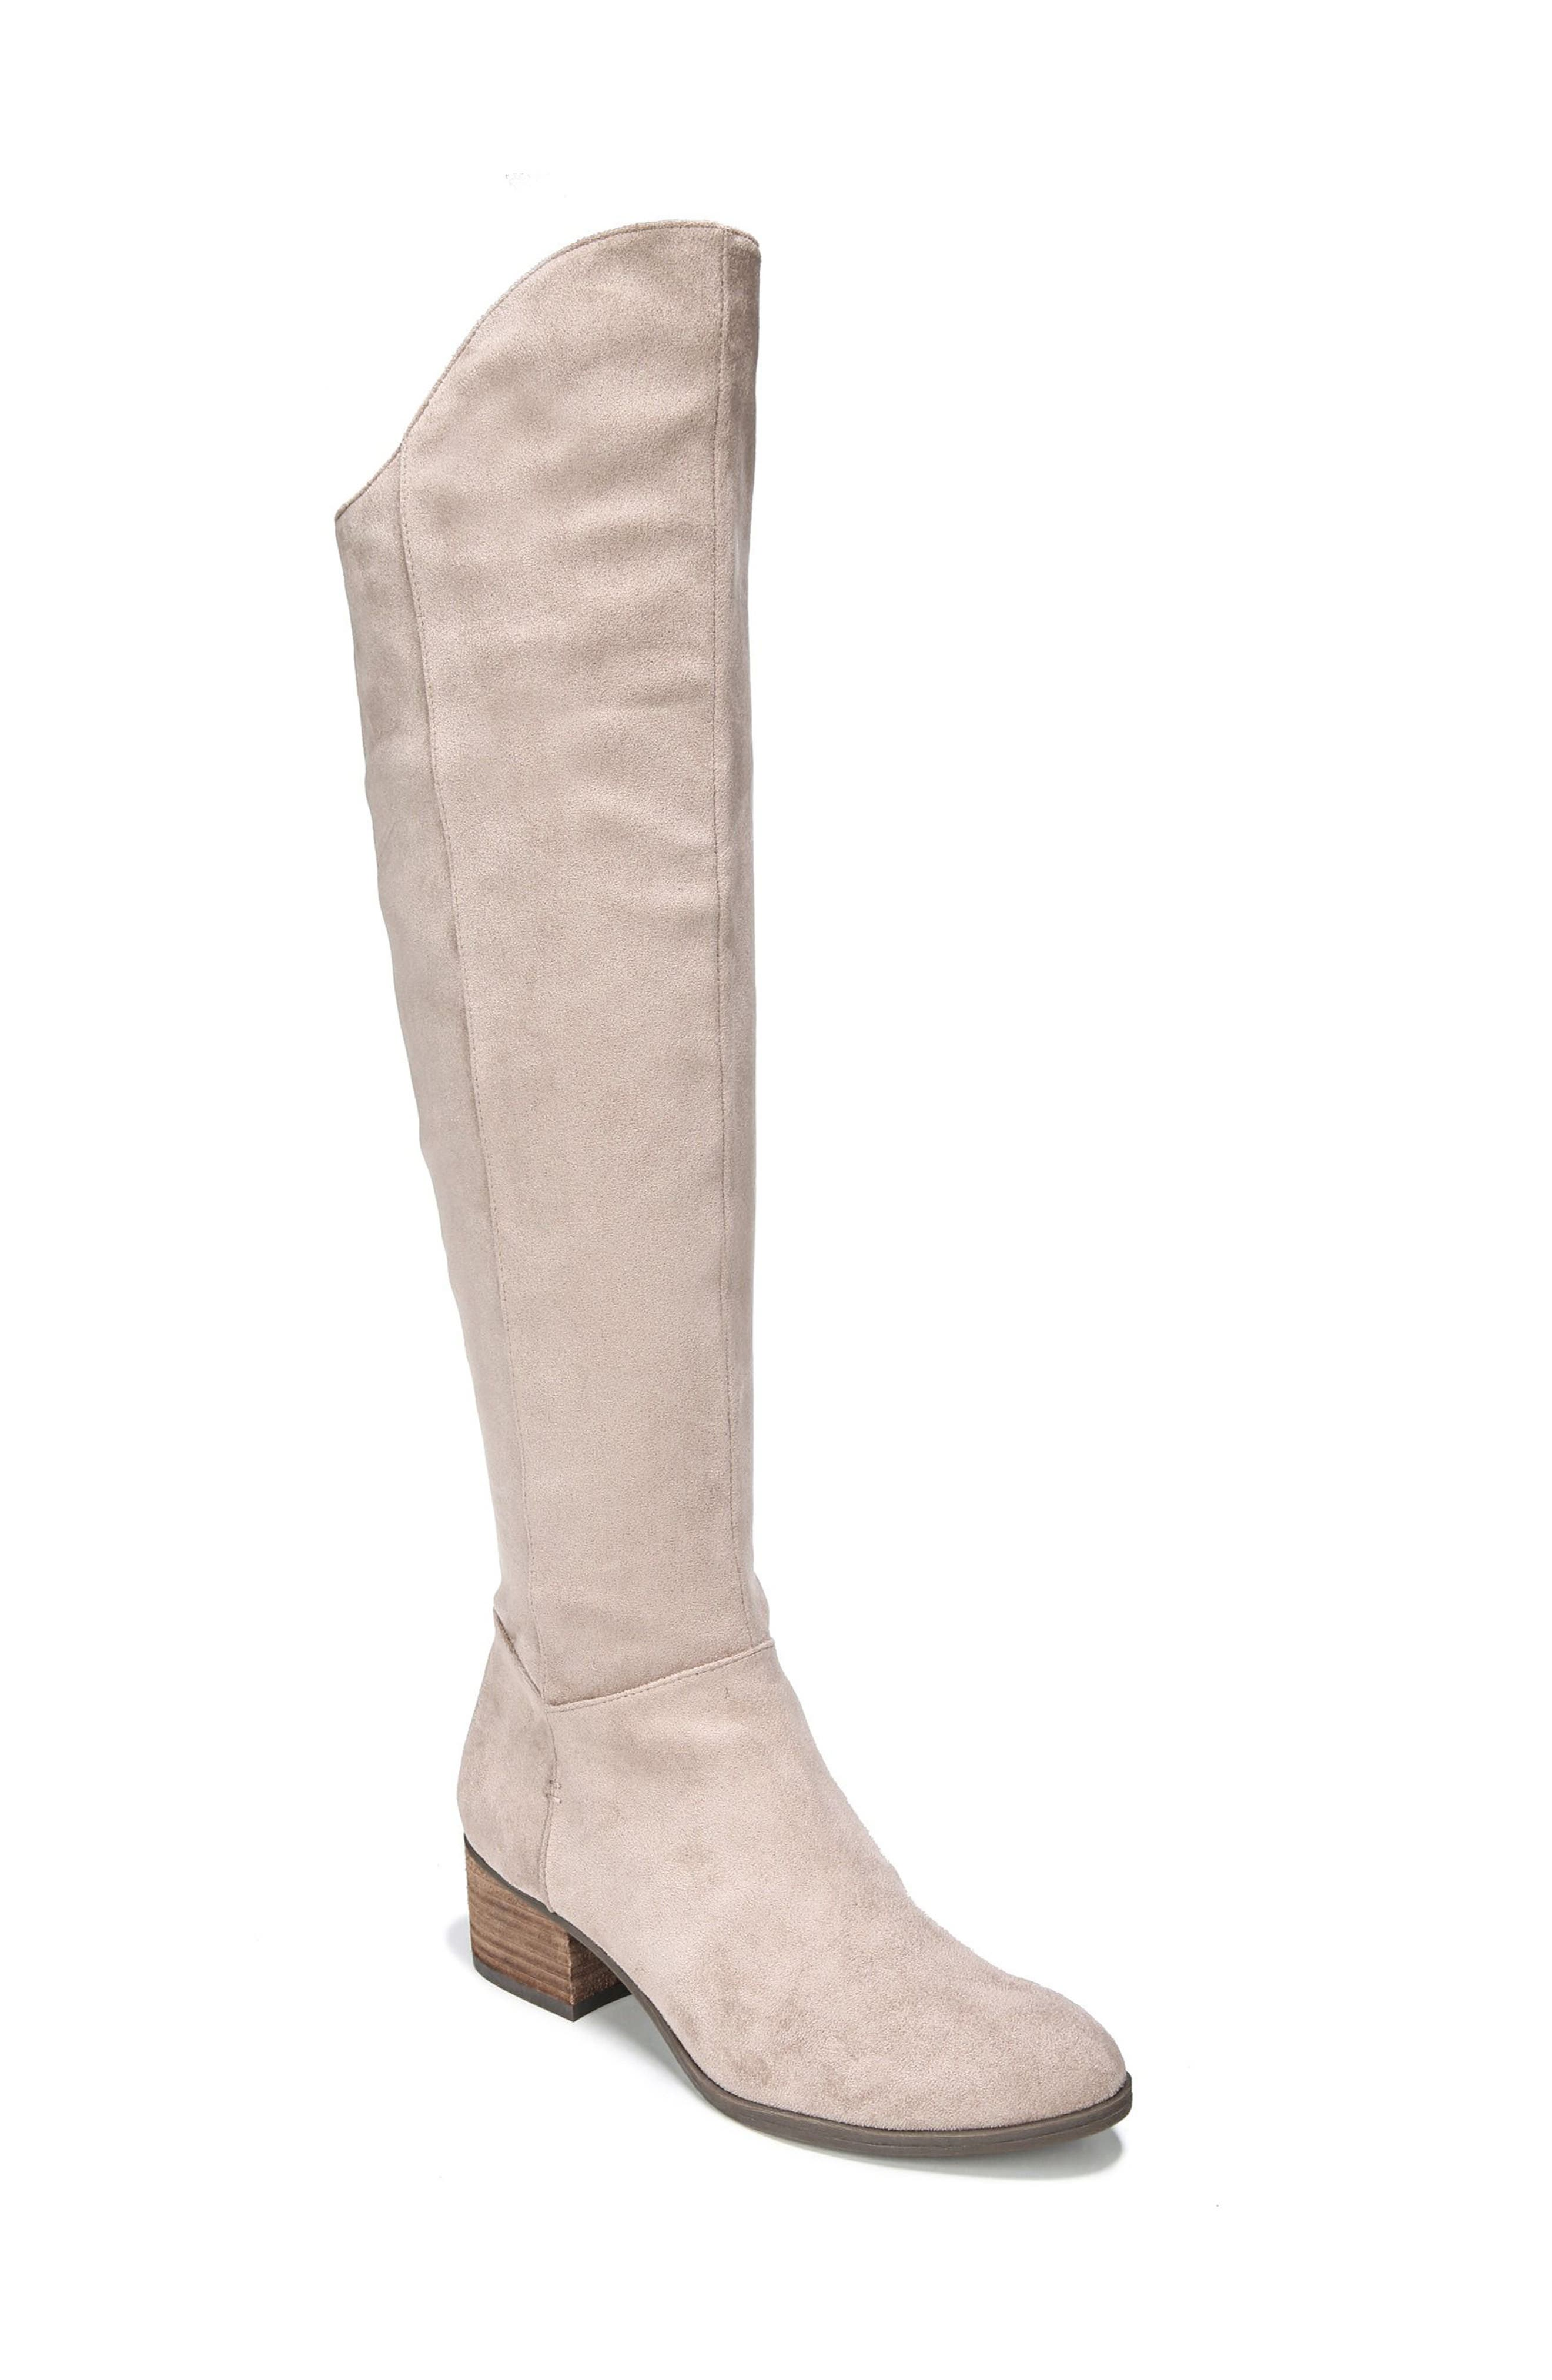 Tribute Boot,                         Main,                         color, Putty Fabric